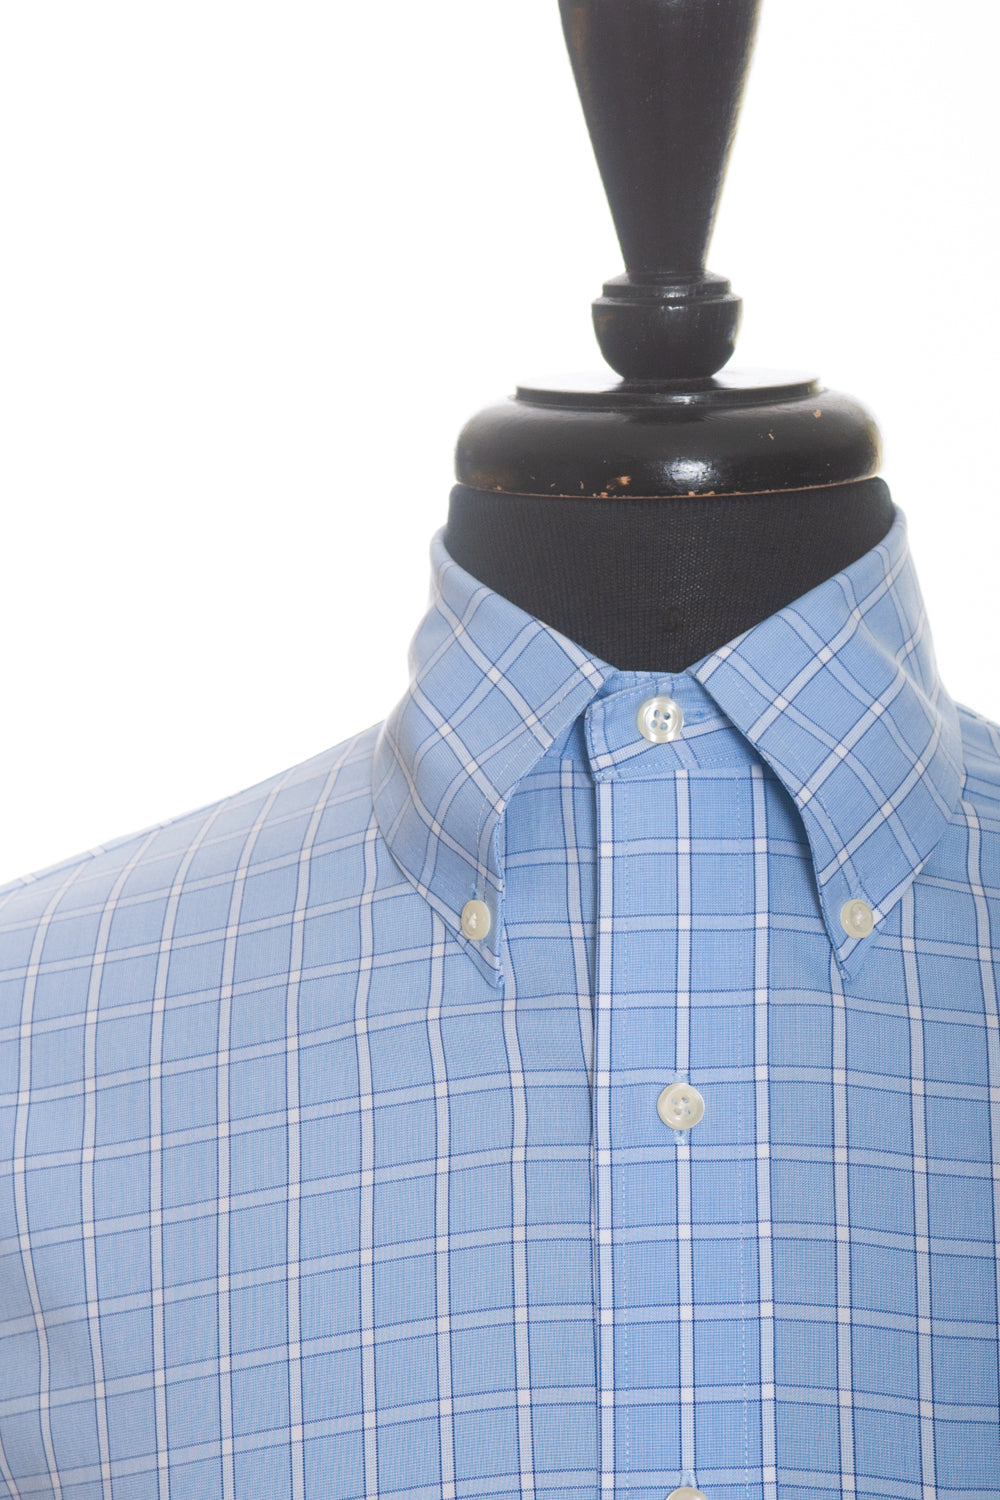 Brooks Brothers Blue Check Original Polo Shirt for Luxmrkt.com Menswear Consignment Edmonton